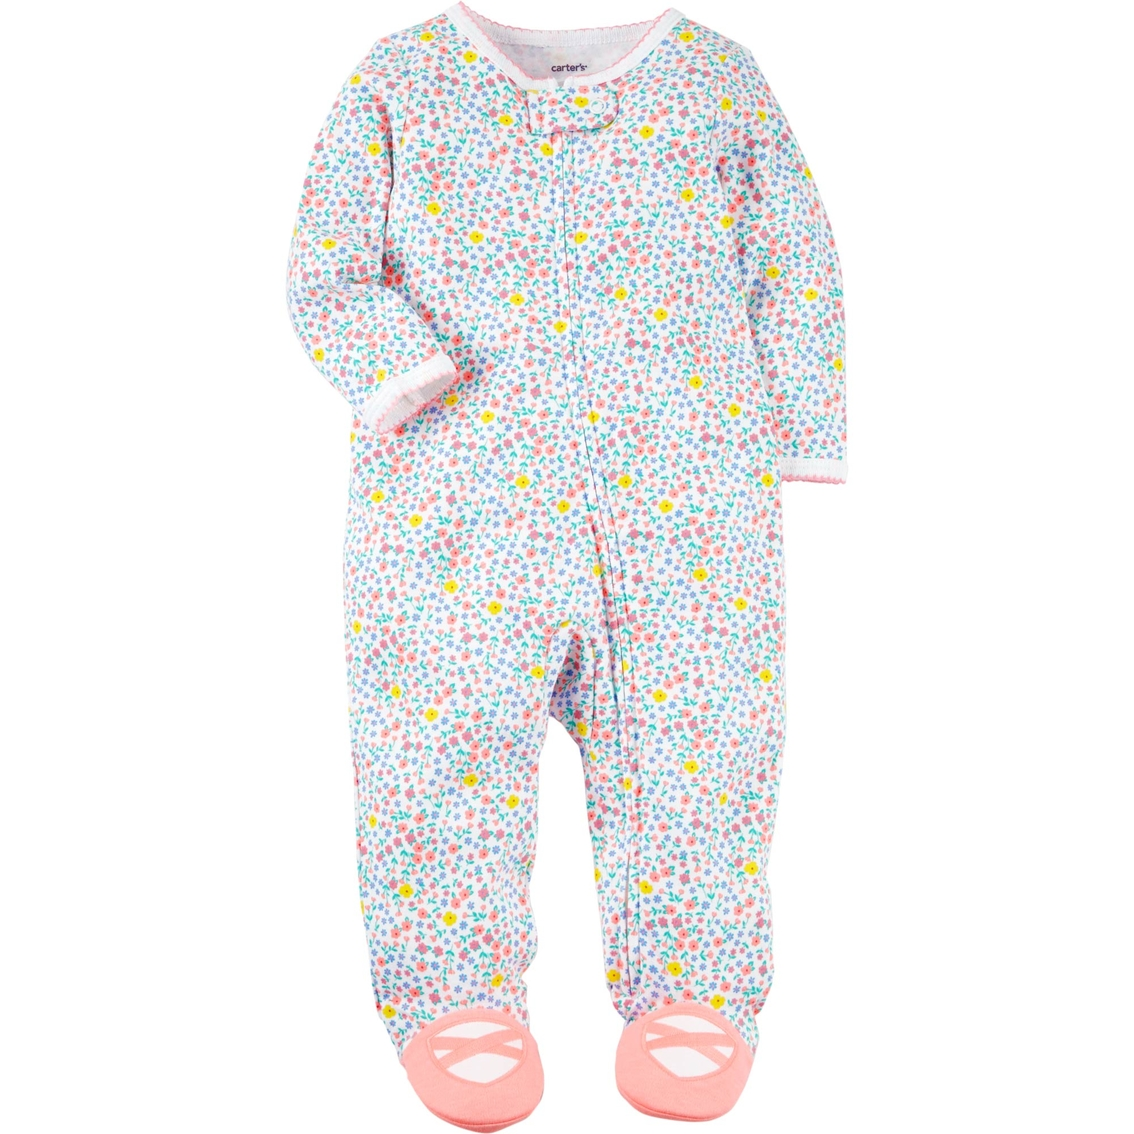 87c2e617c Carter's Infant Girls Floral Sleep And Play | Baby Girl 0-24 Months ...